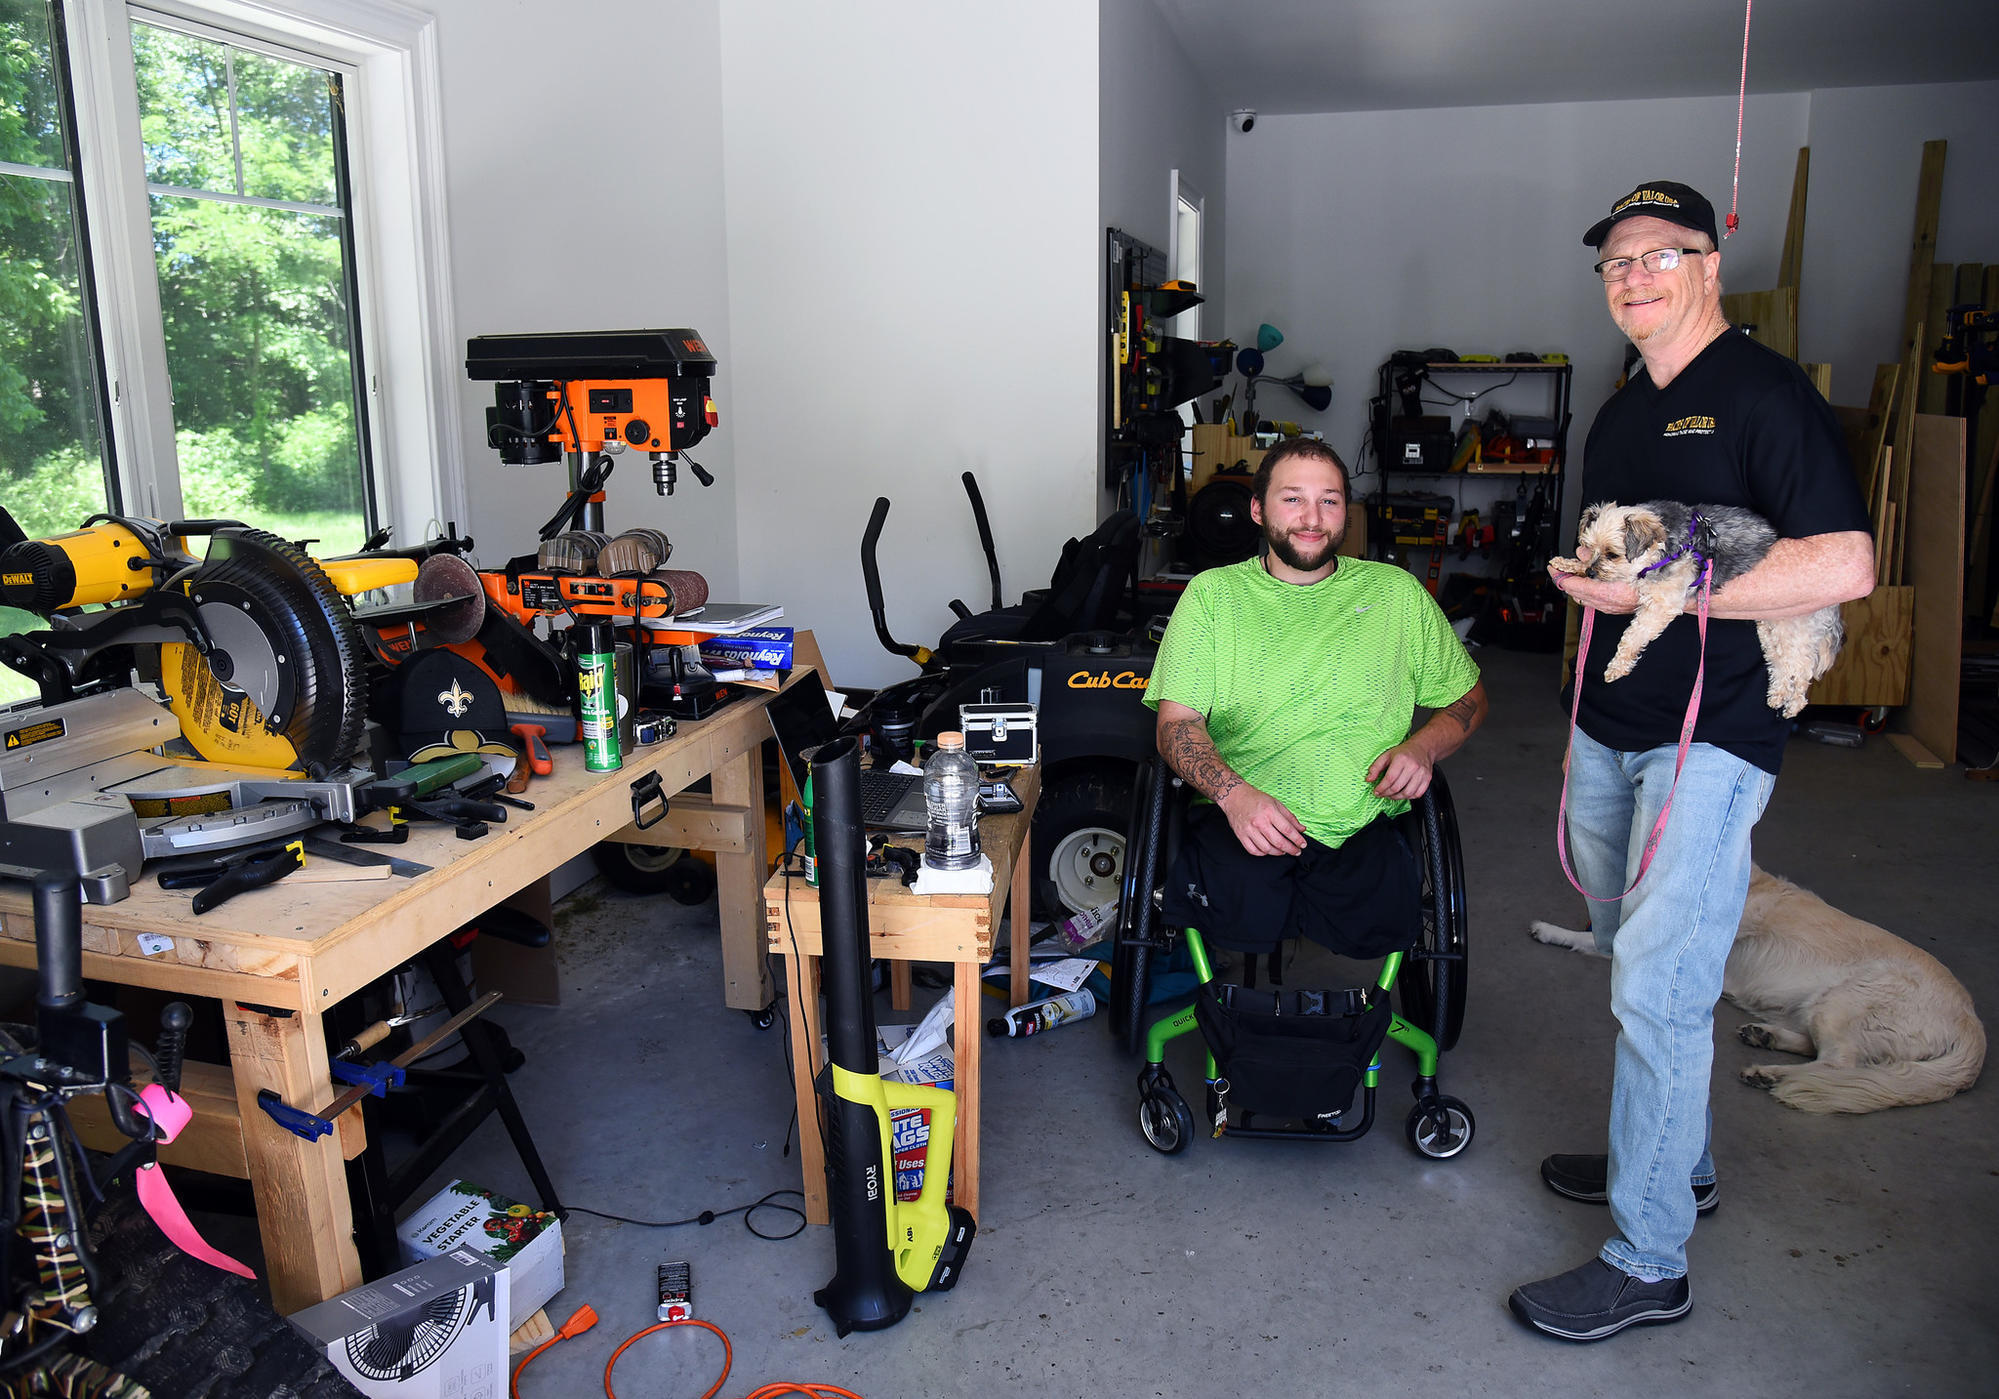 Something to build on: Faces of Valor event honors wounded vet by building him a workshop